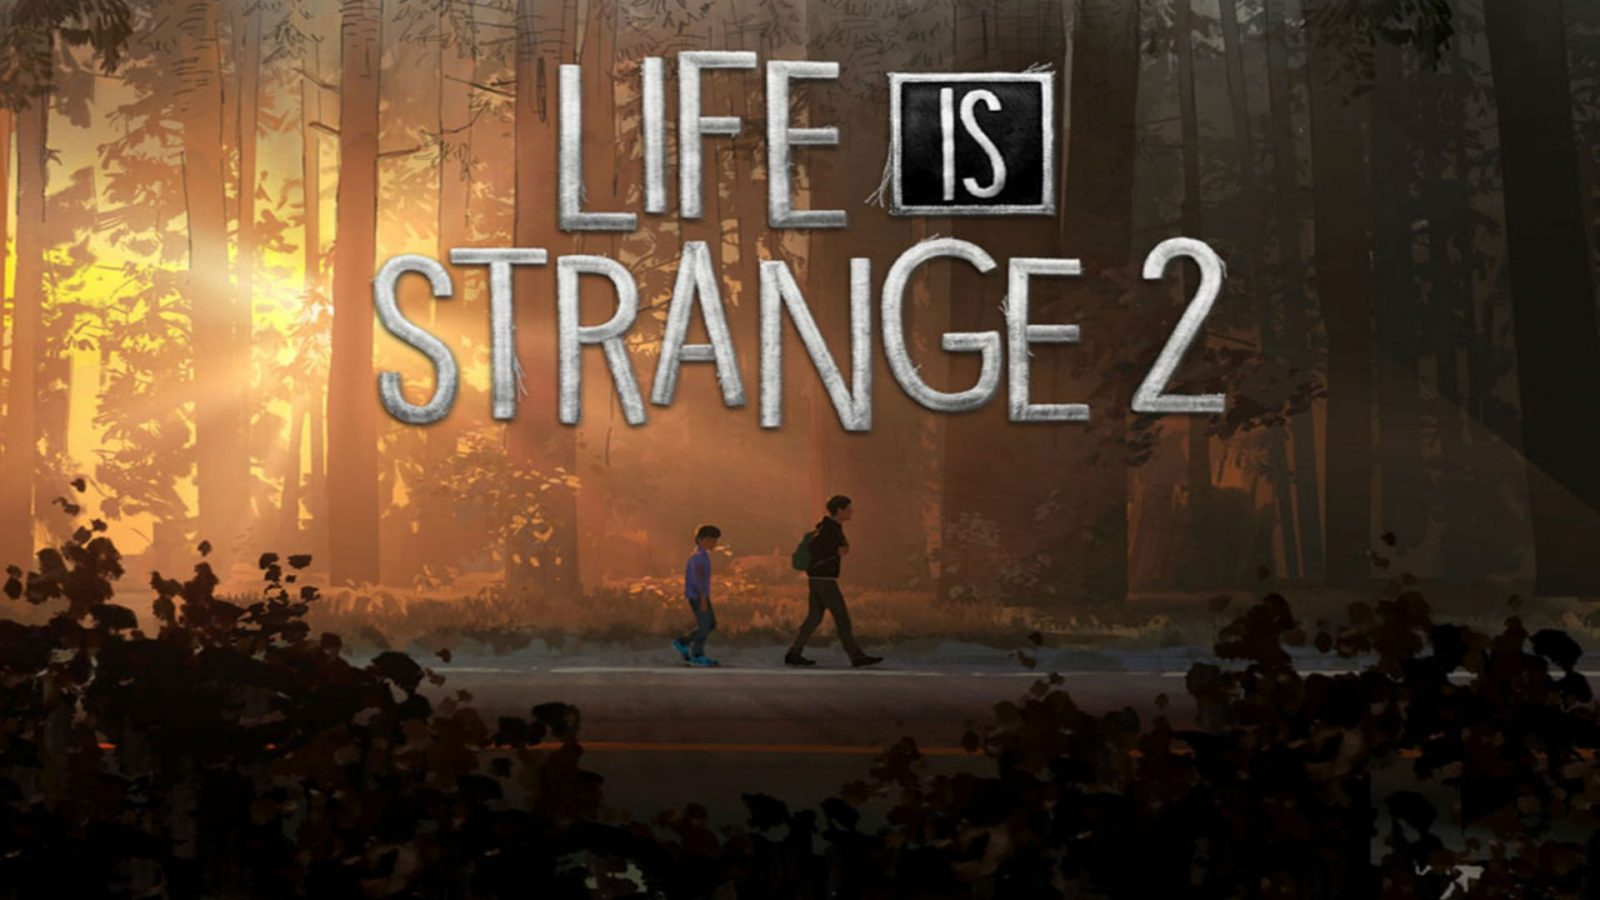 The Rising Reception of Life is Strange 2